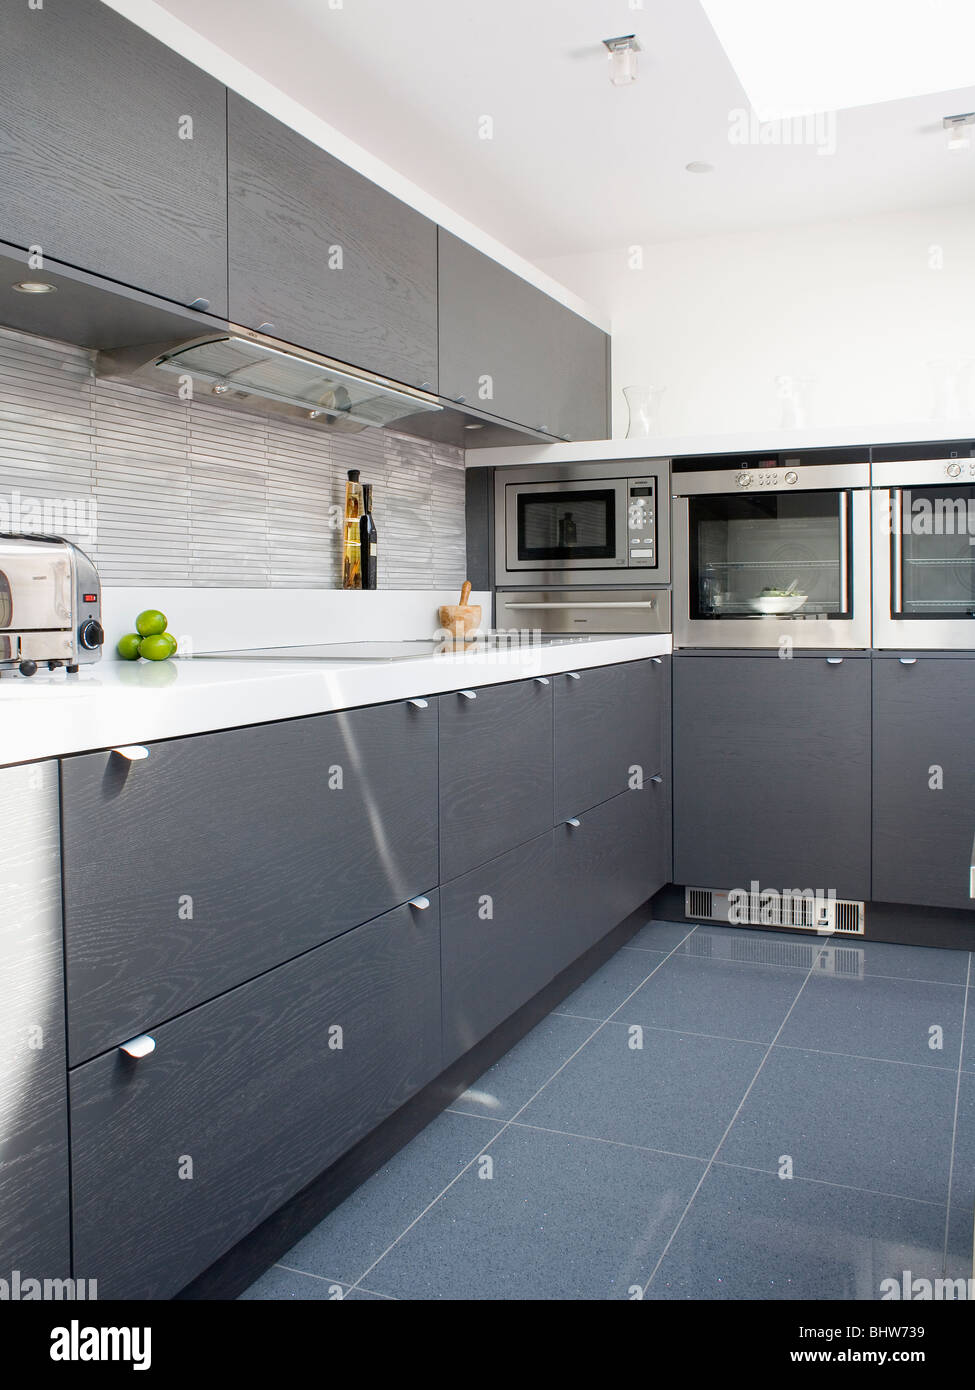 Grey Ceramic Floor Tiles In Modern White Kitchen With Dark Gray - Grey fitted kitchens